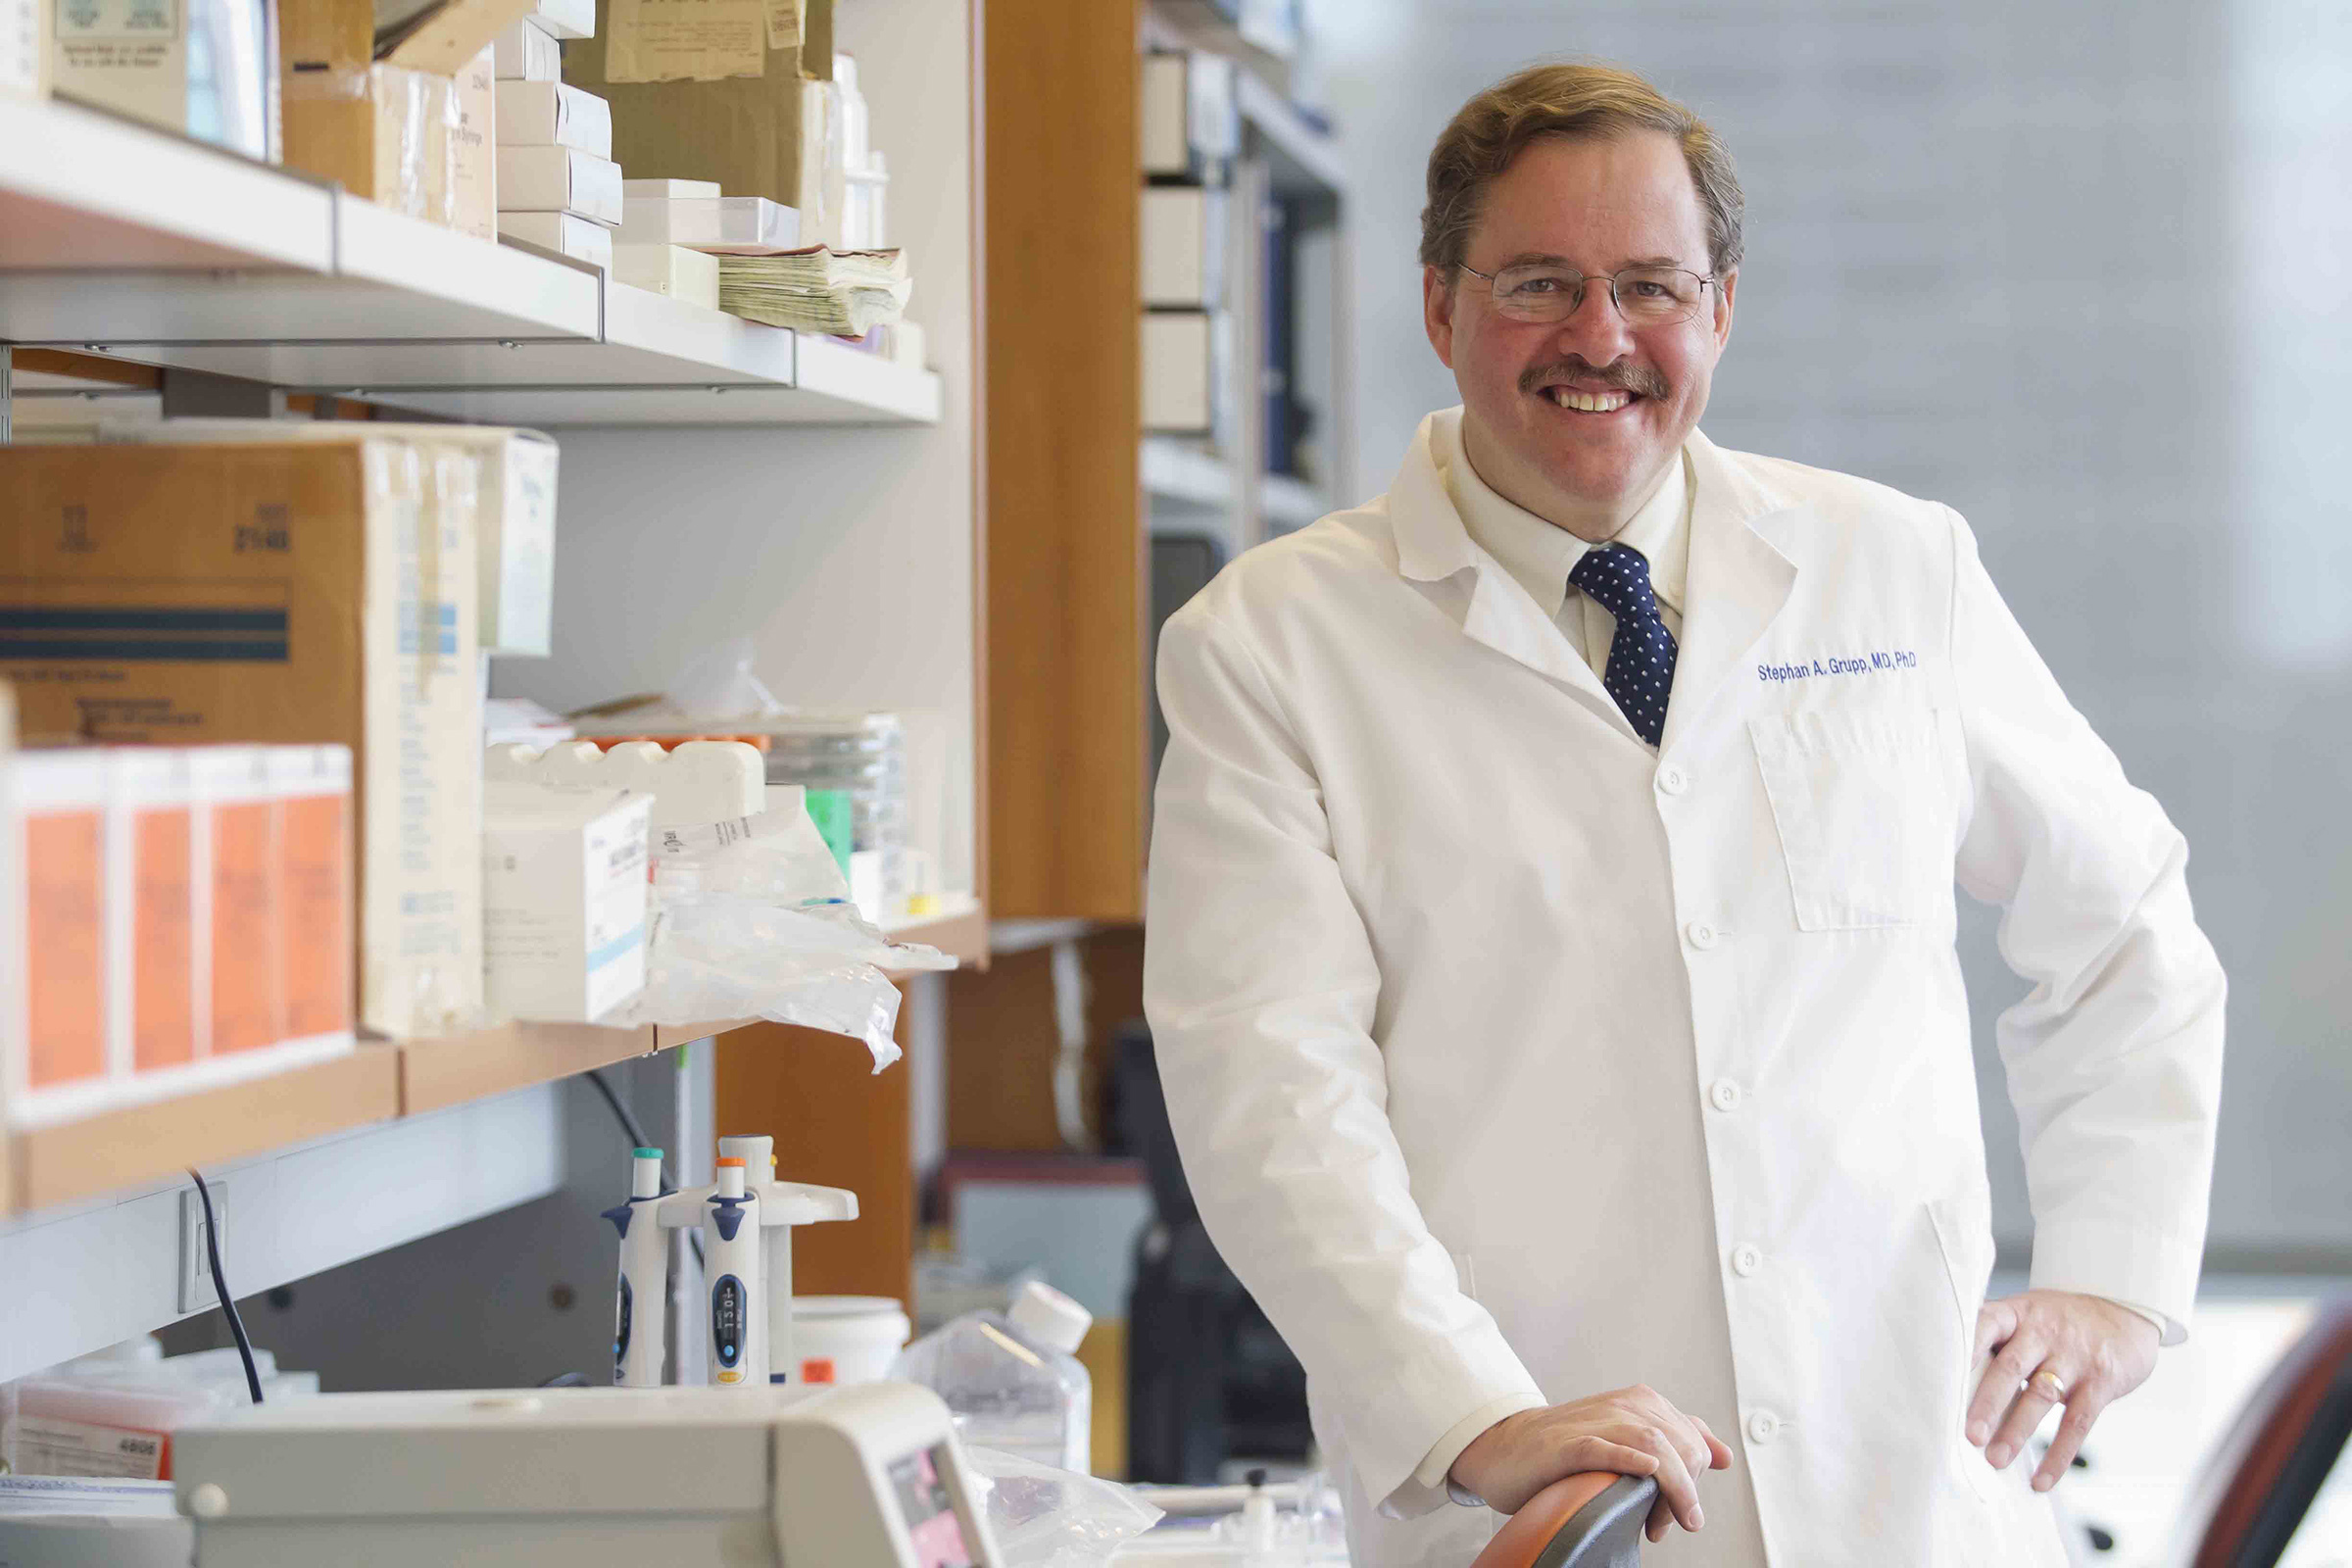 CHOP oncologist Stephan Grupp has led clinical trials of the first approved CAR T cell therapy